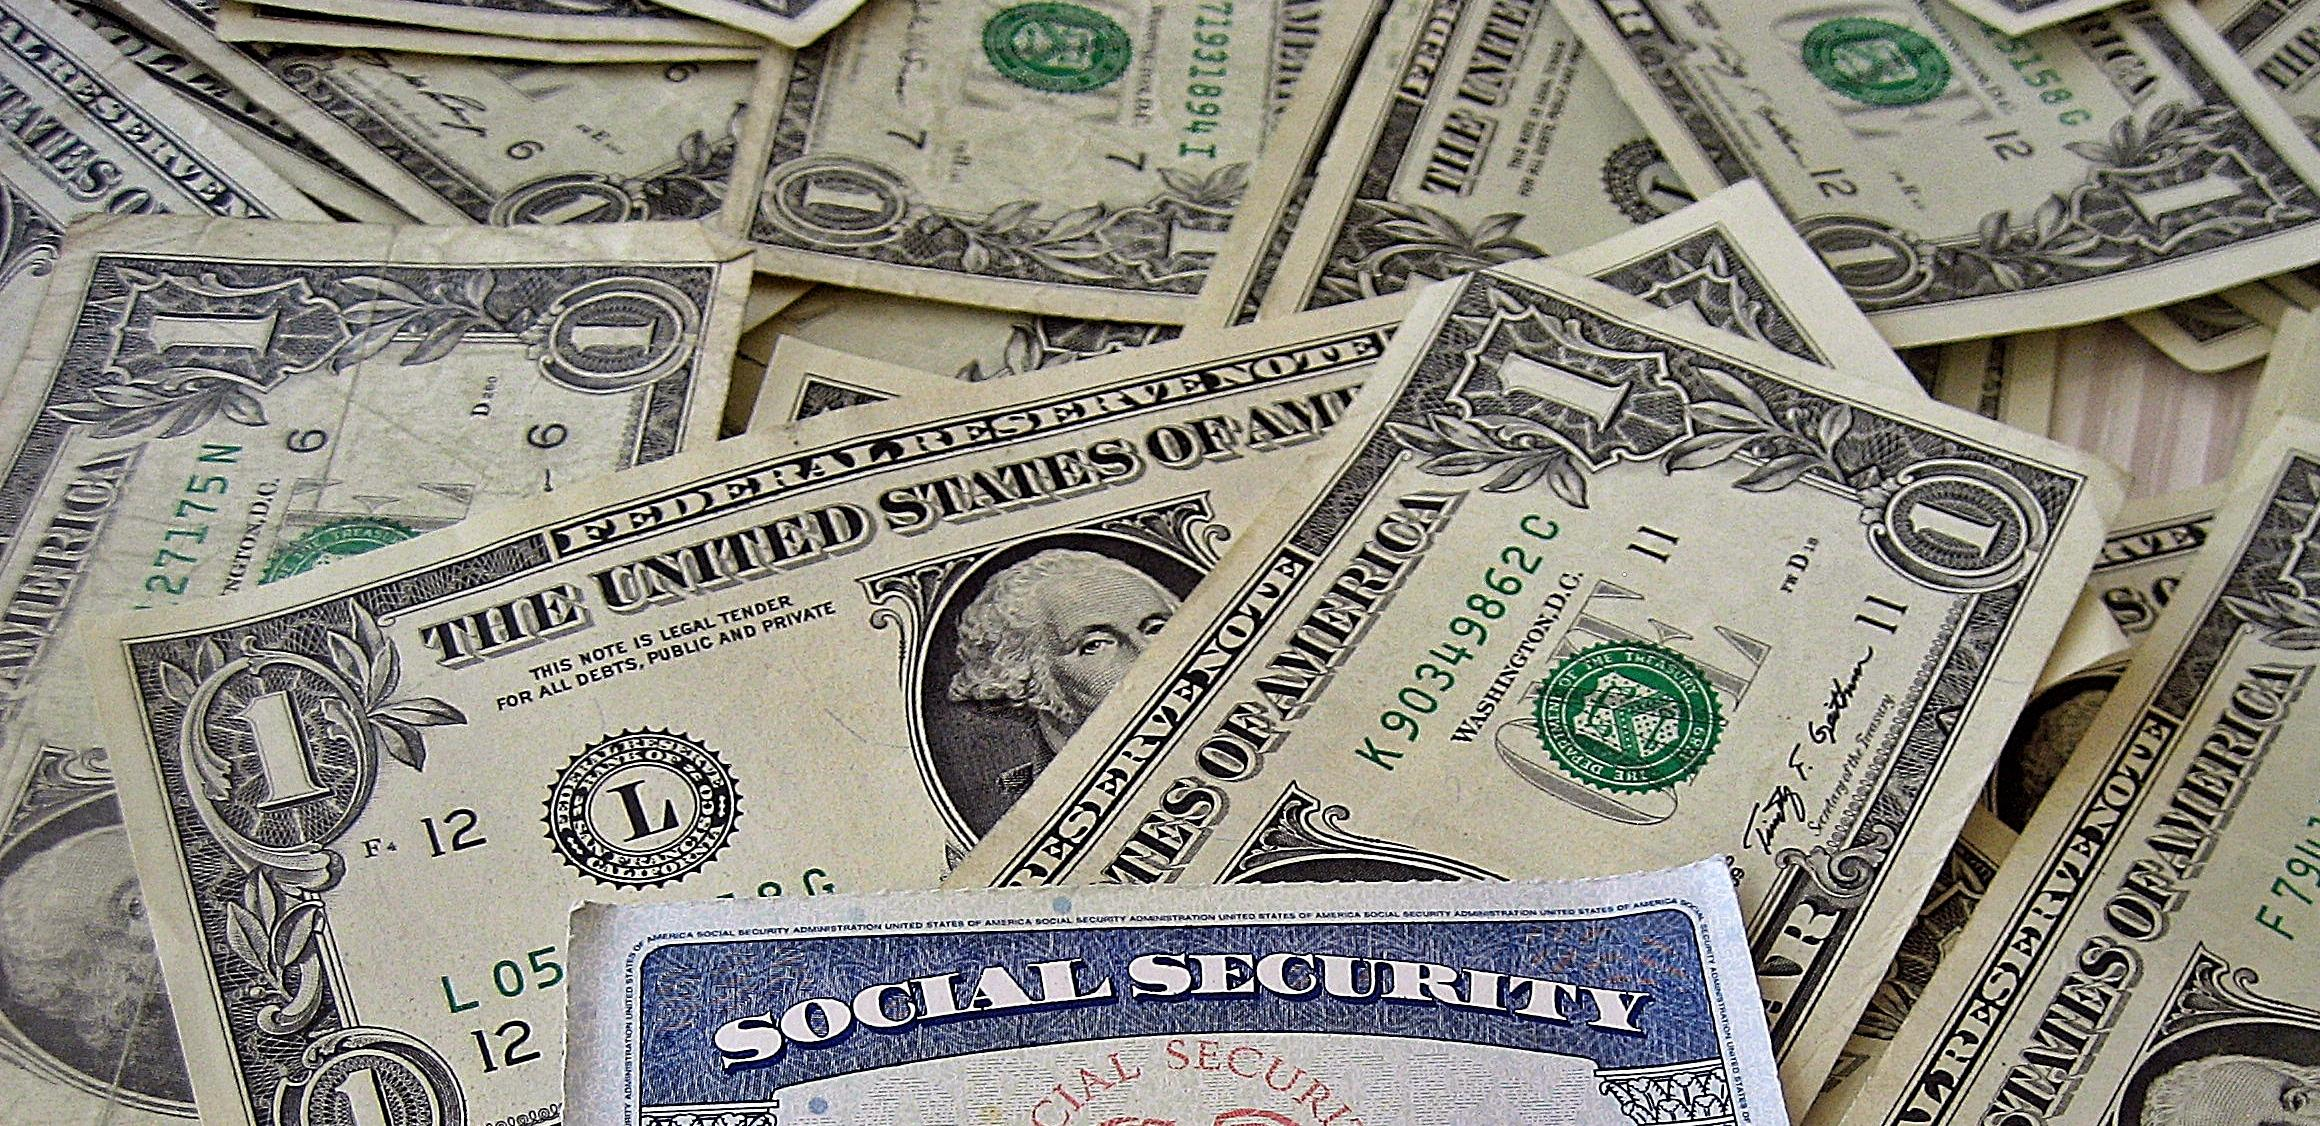 Social Security card on top of a bed of money